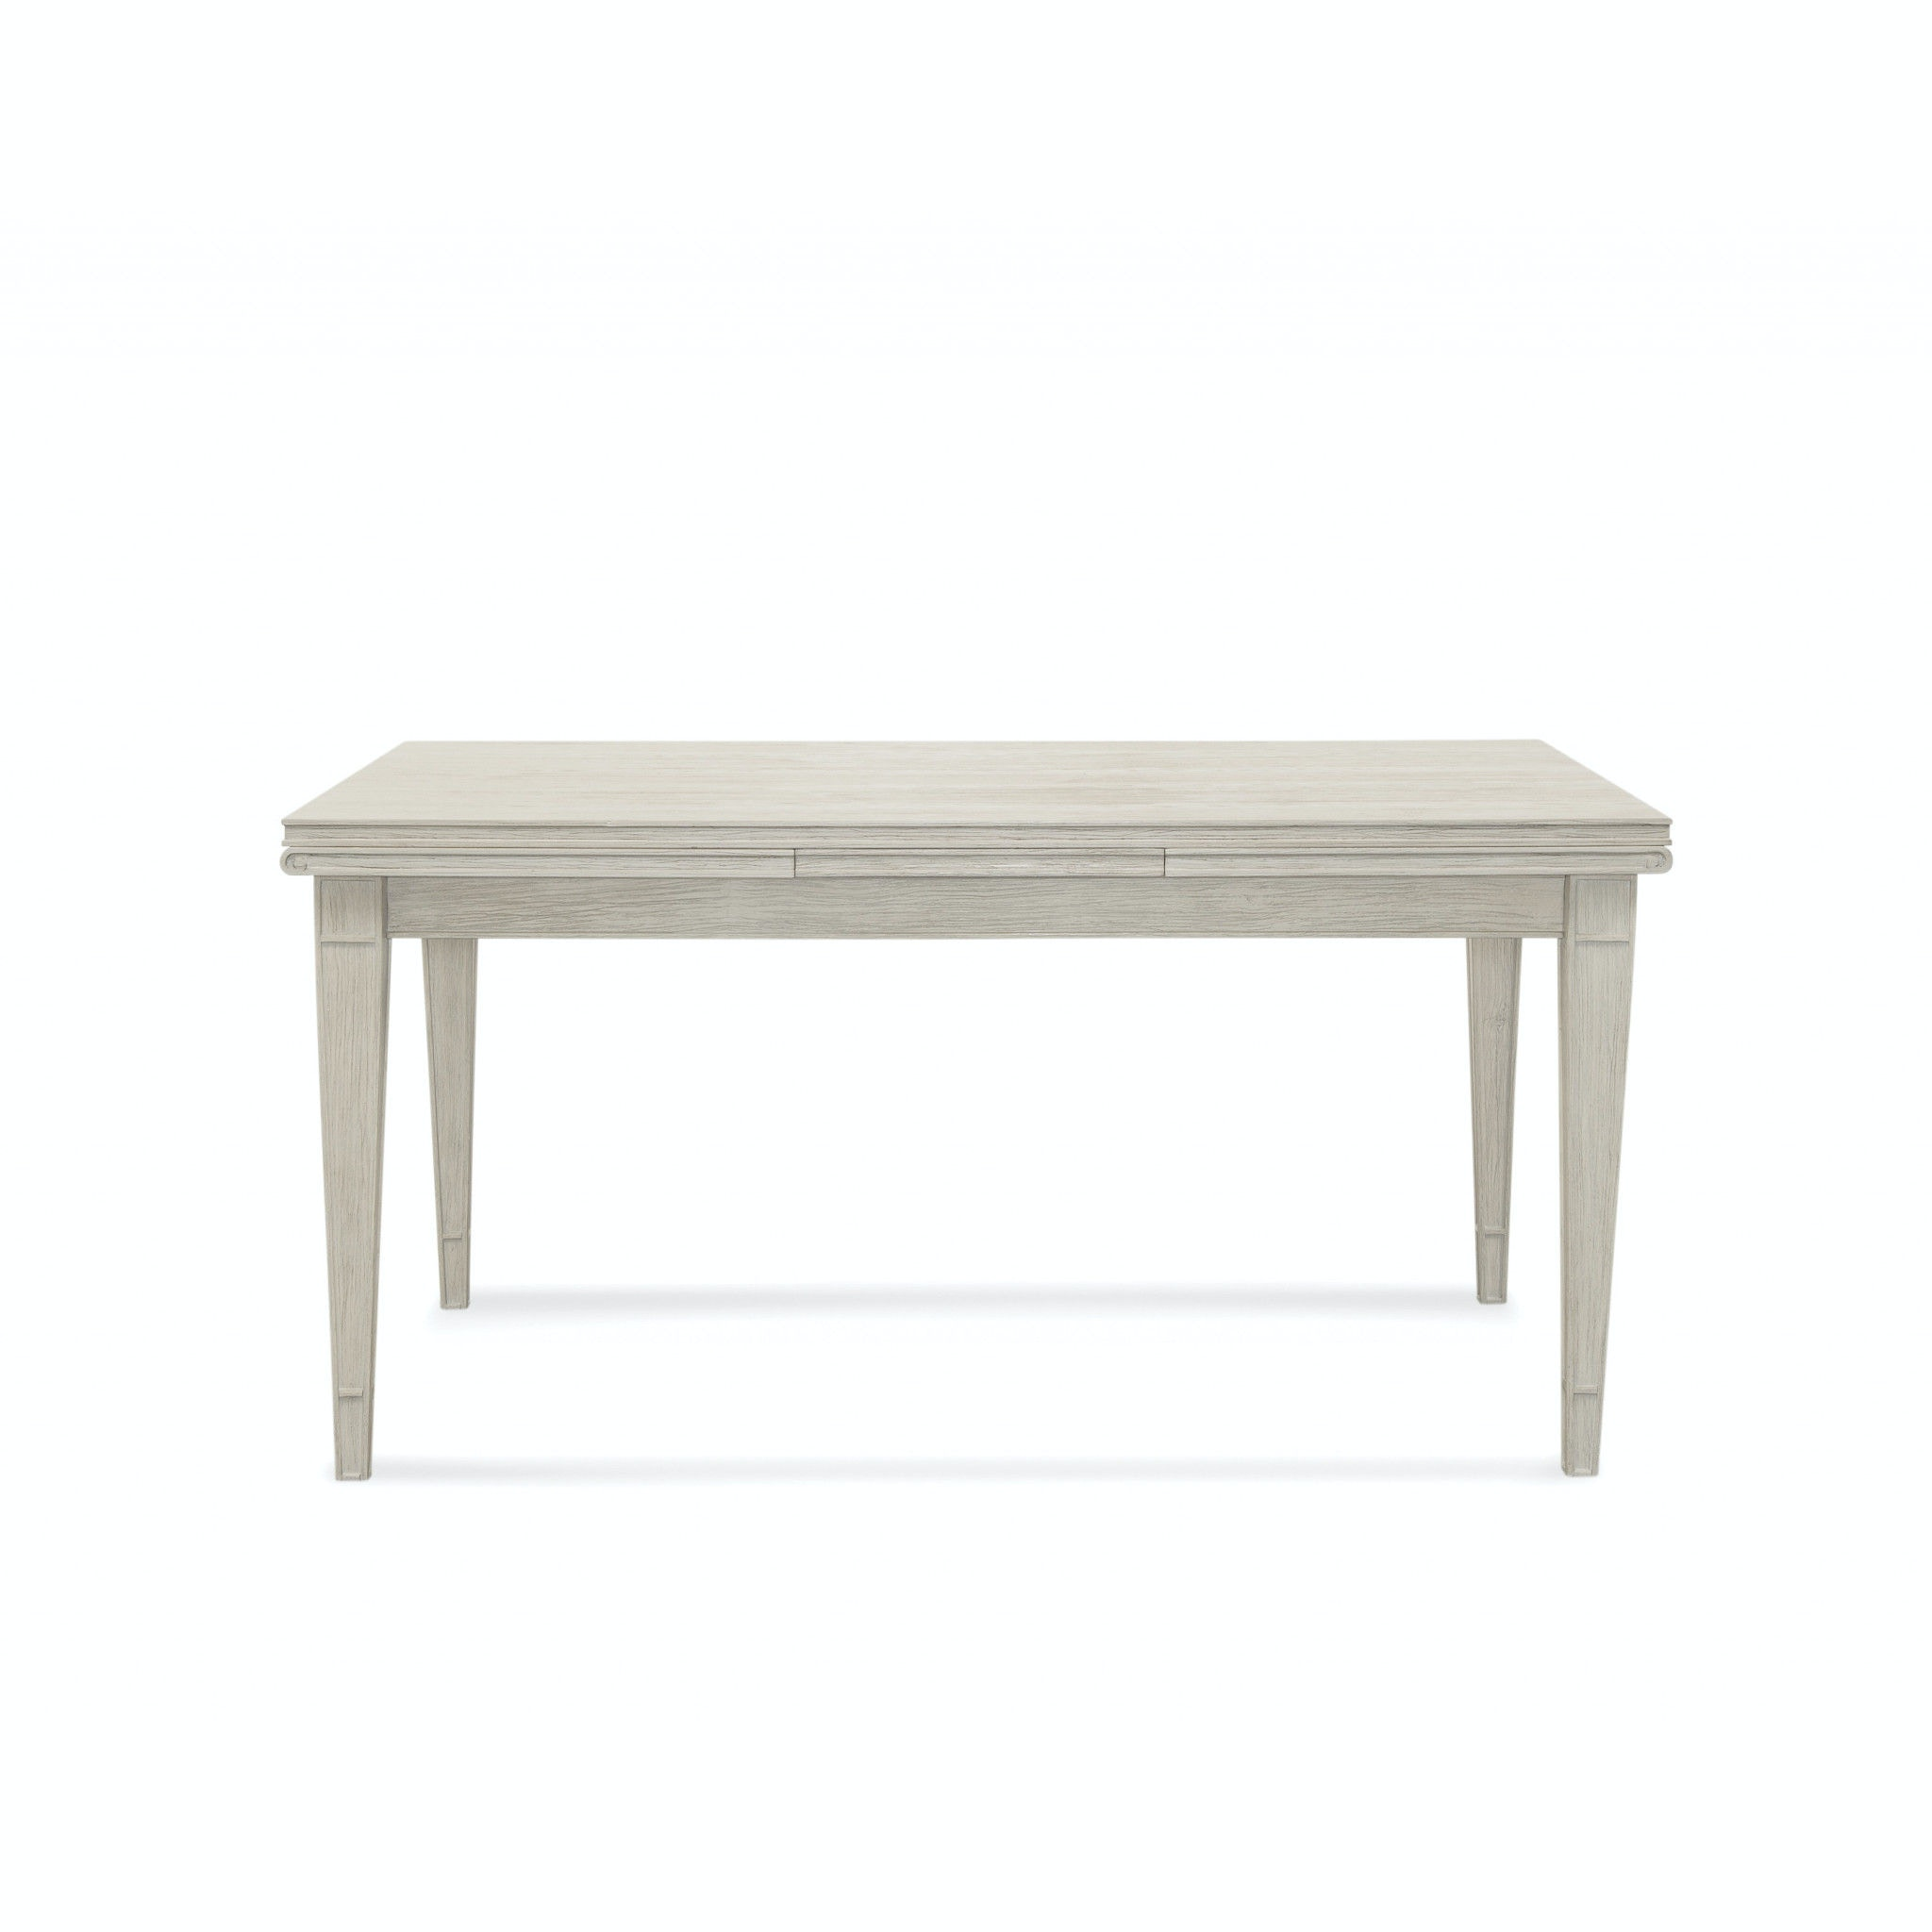 Bassett Mirror Company Camryn Refectory Table 1152 DR 602